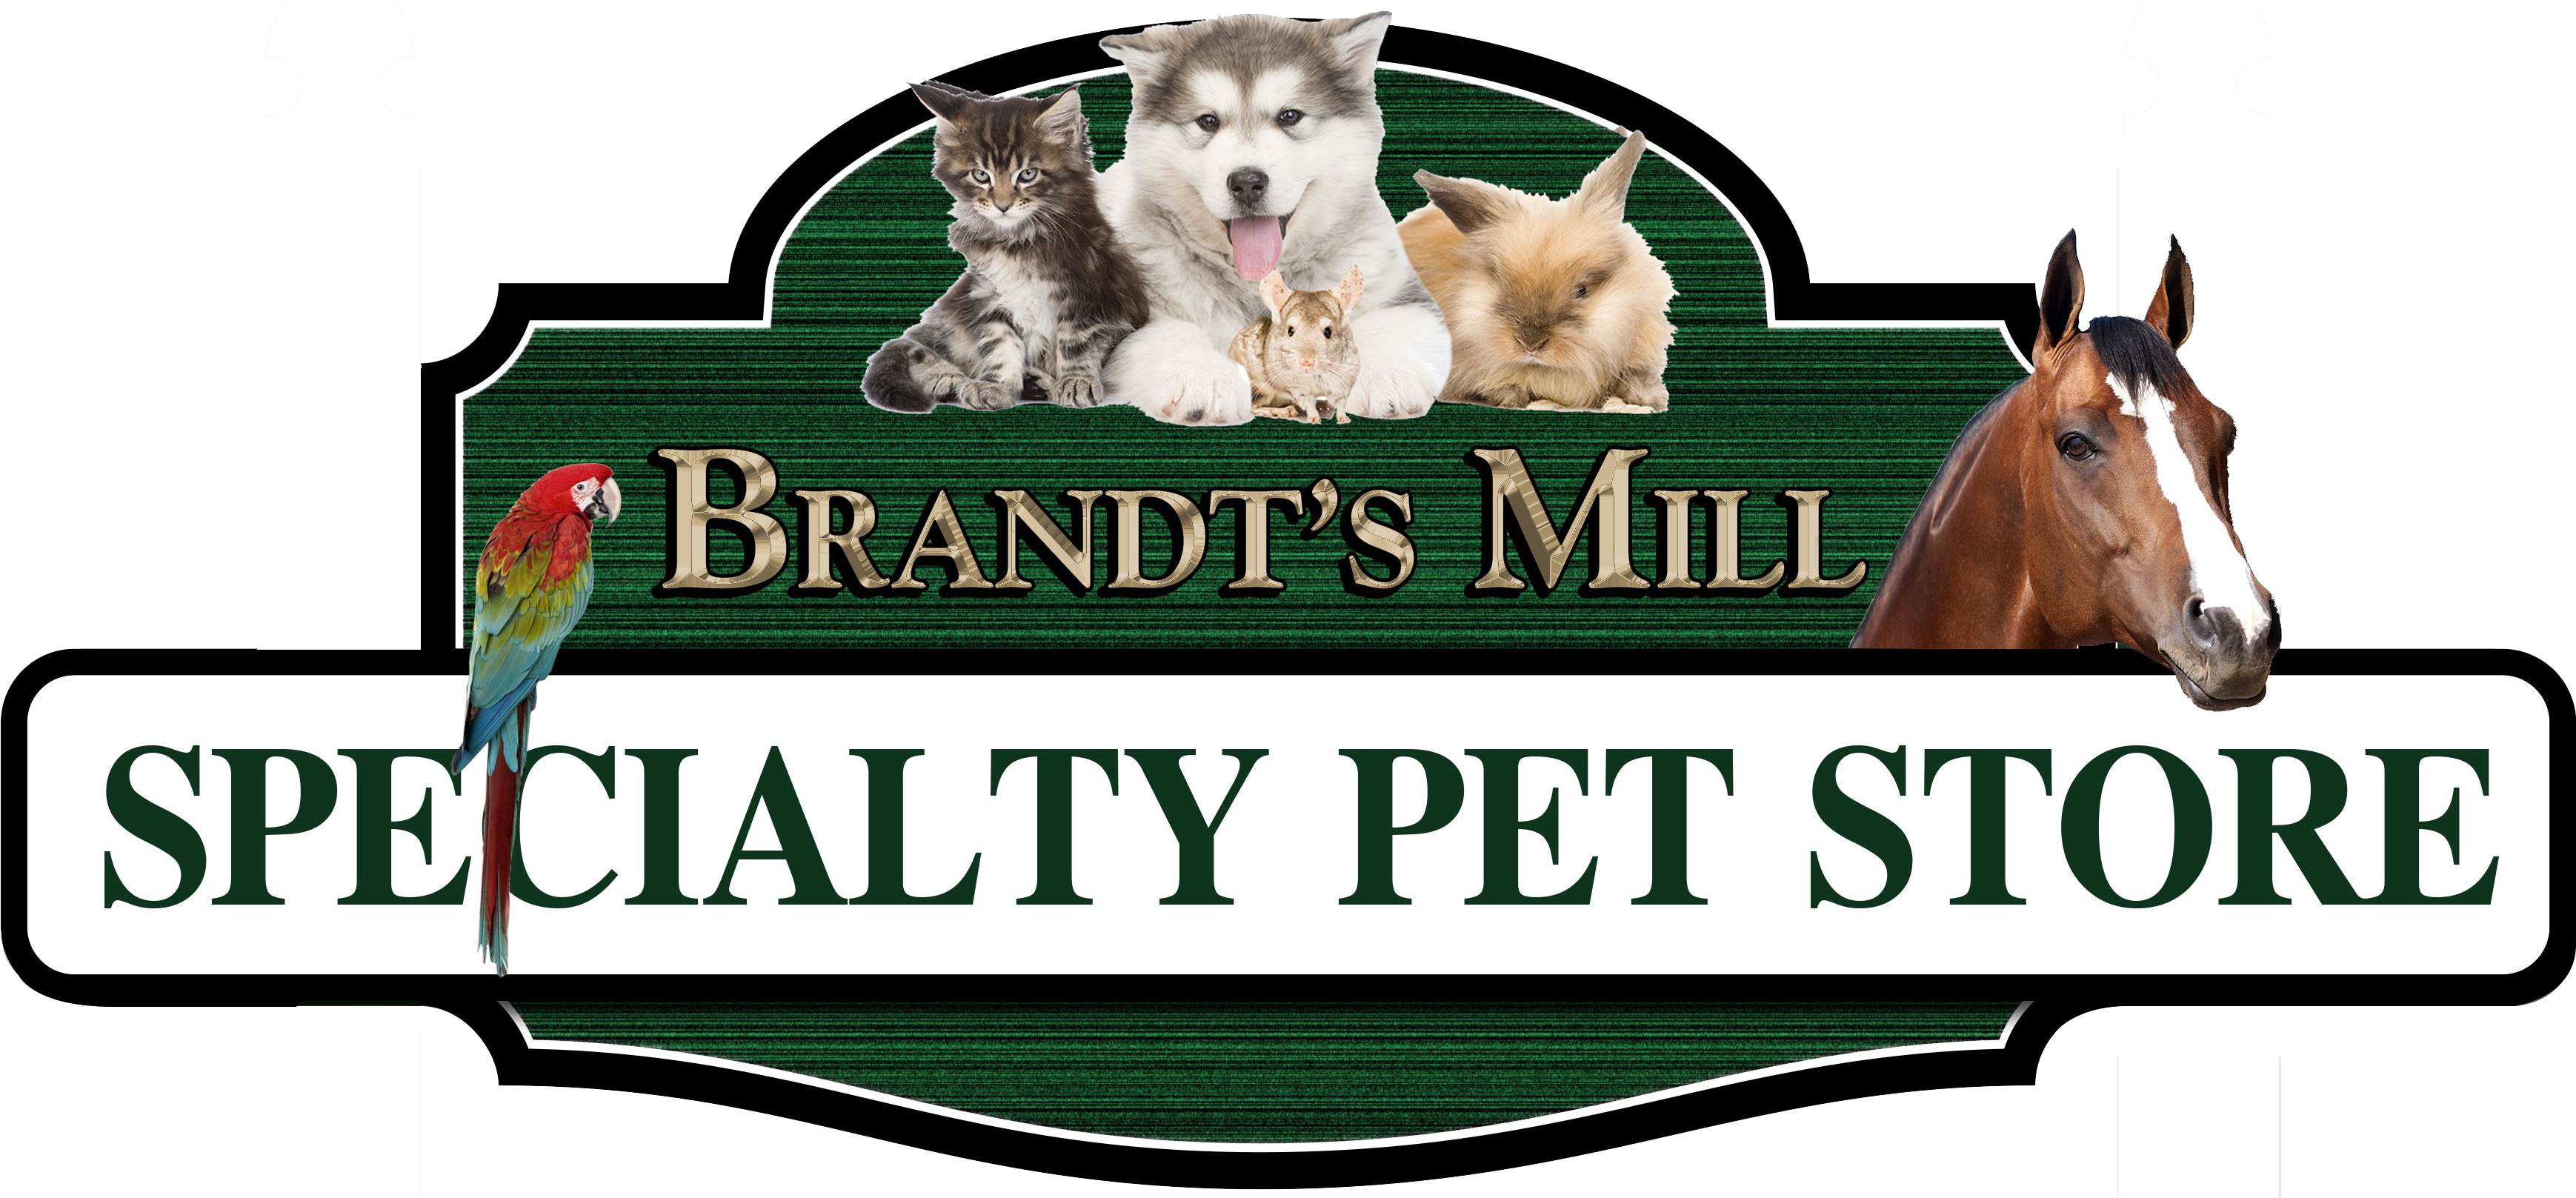 Brandt's Mill Specialty Pet Store in Lebanon, PA